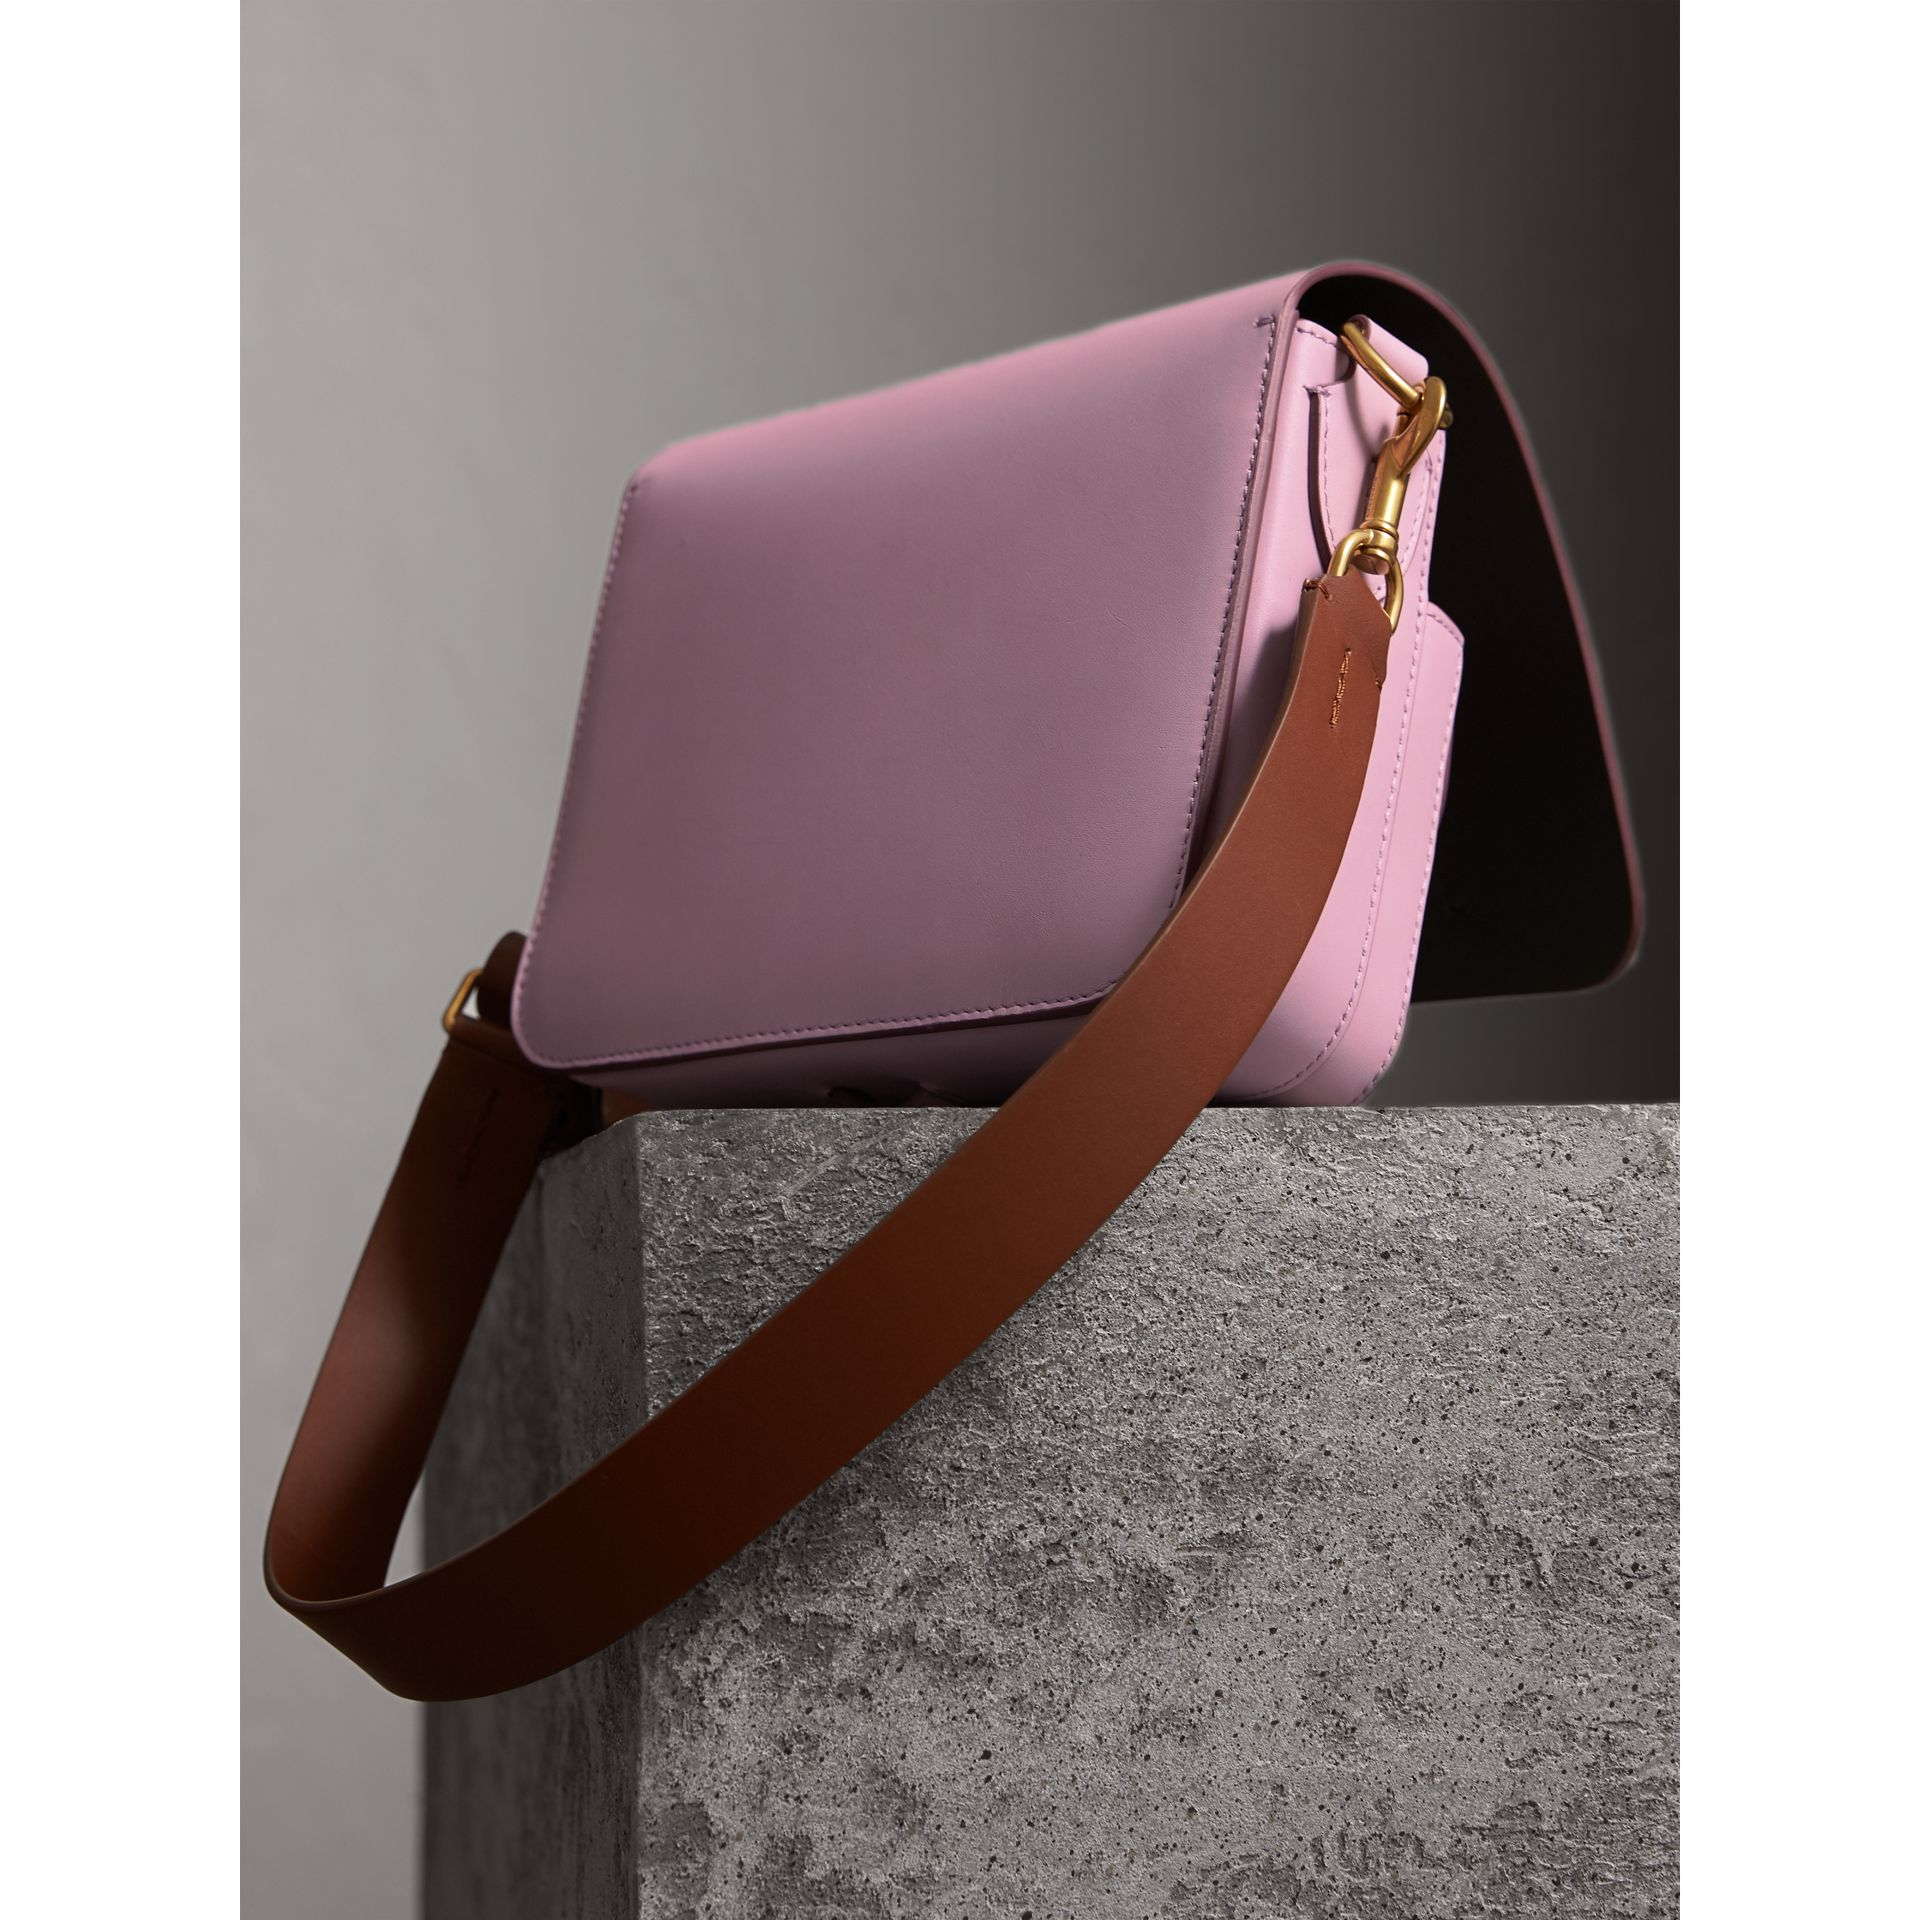 The Square Satchel in Leather in Pale Lavender - Women | Burberry Canada - gallery image 3